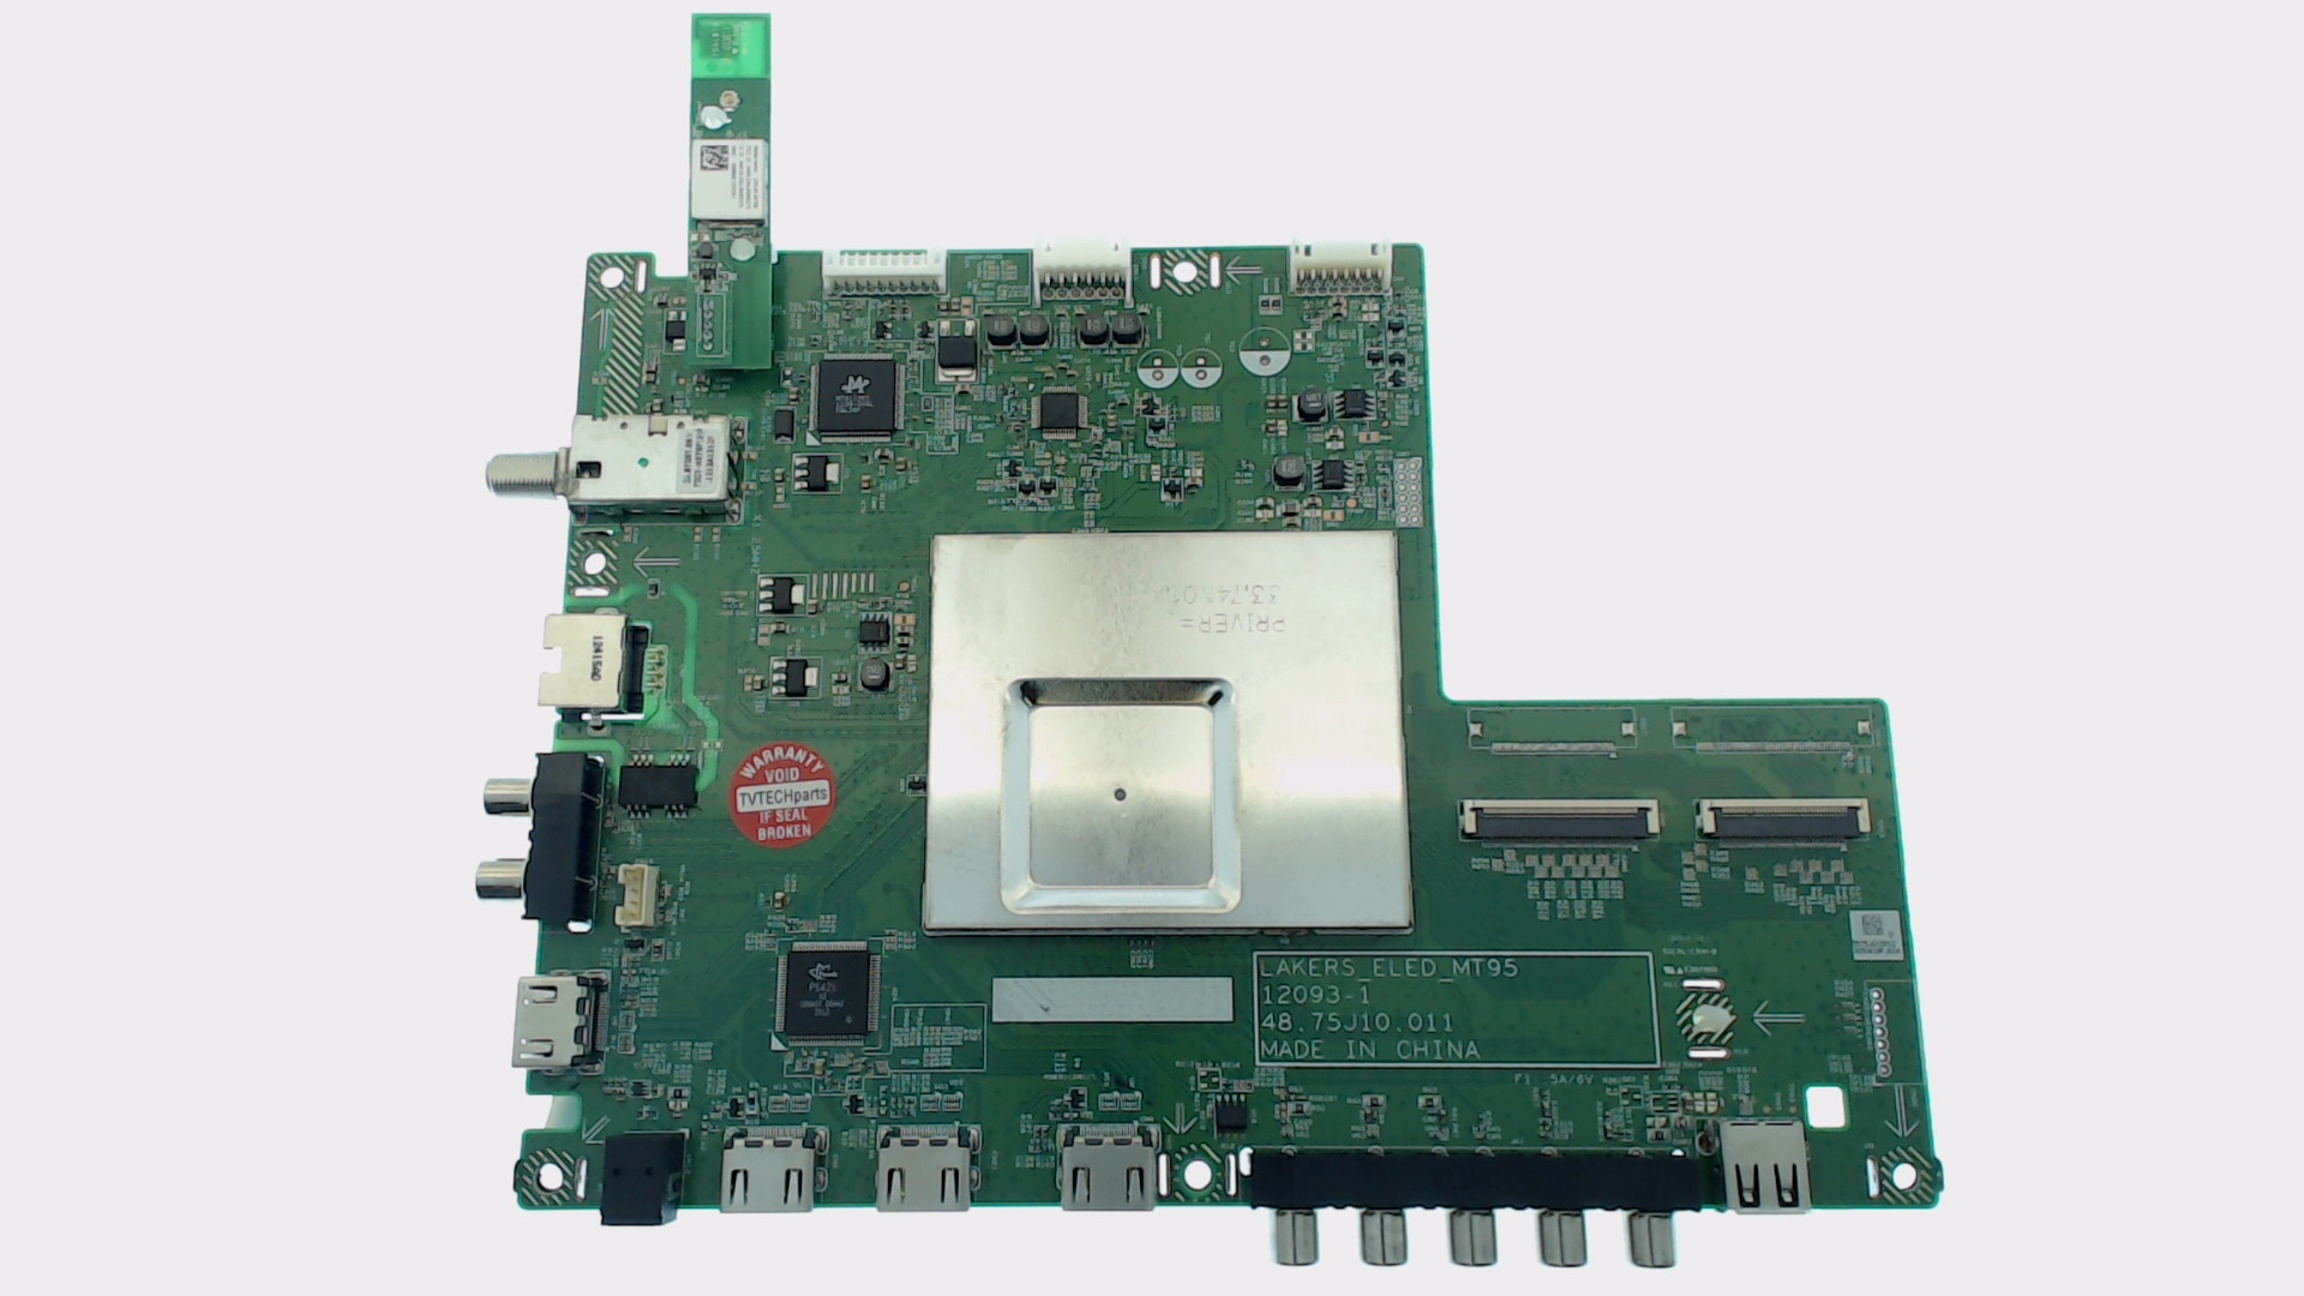 Vizio TV Model E650i-A2 Main Board Part Number 55.75J01.001G